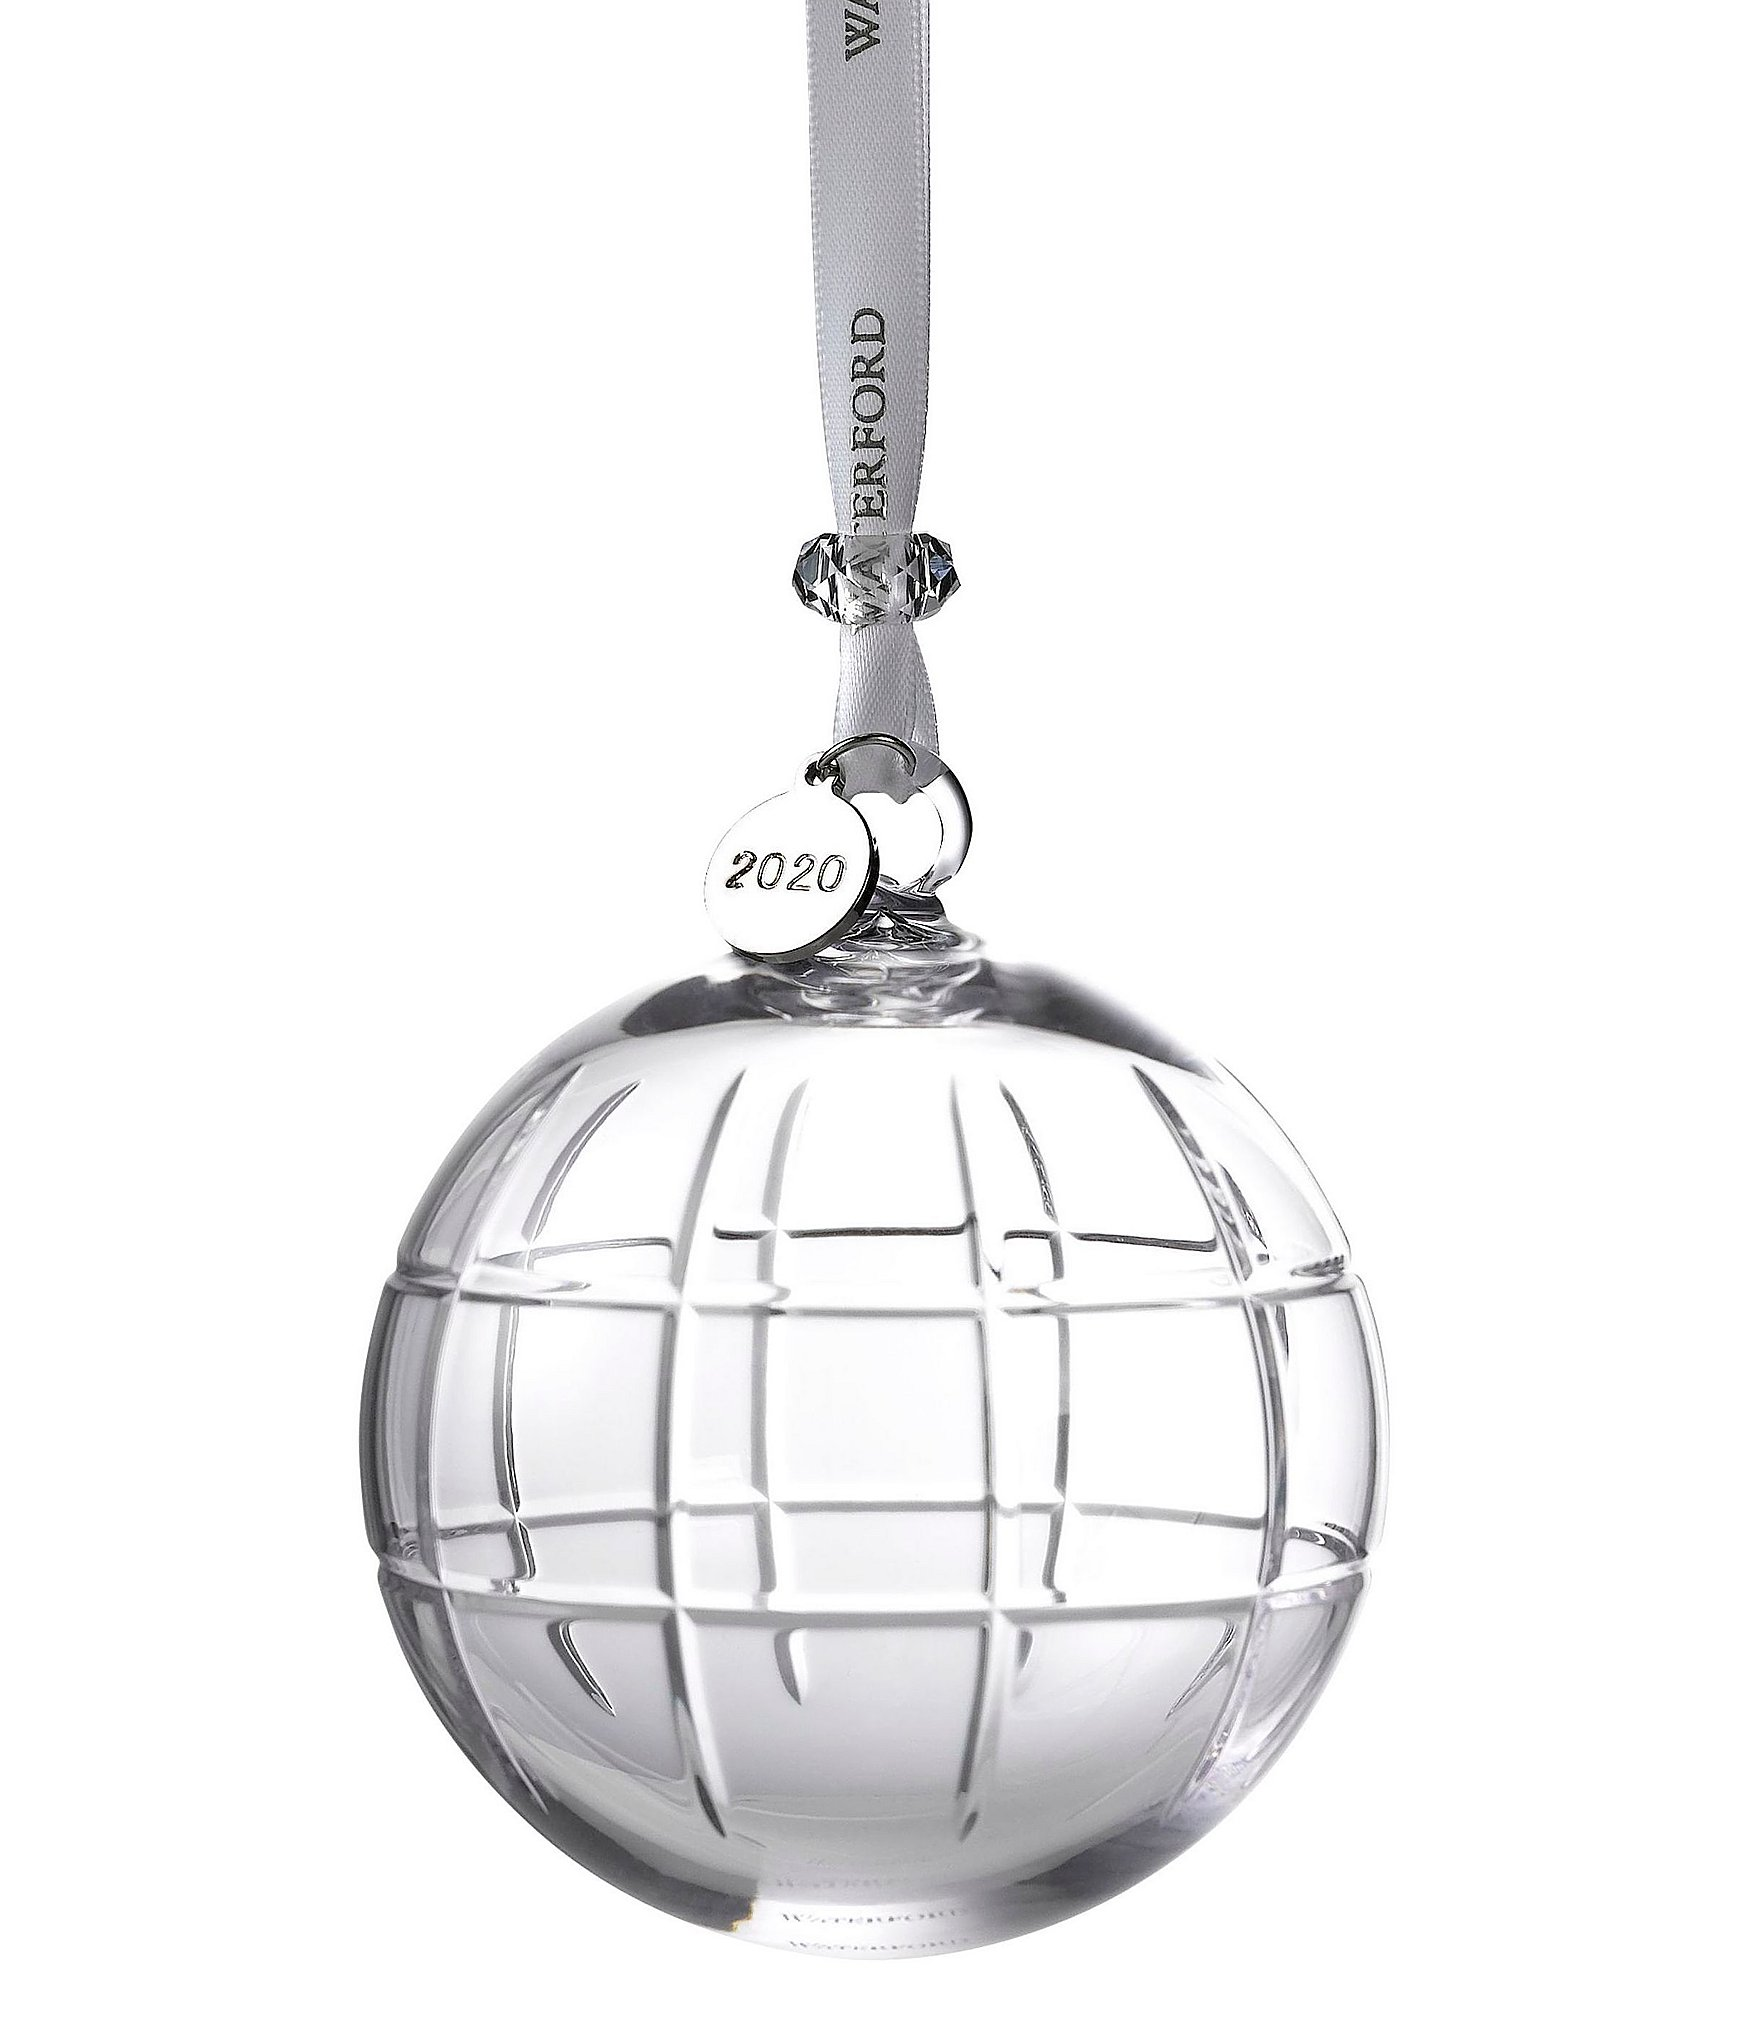 Waterford Crystal Christmas 2020 Waterford Crystal 2020 Cluin Ball Ornament | Dillard's